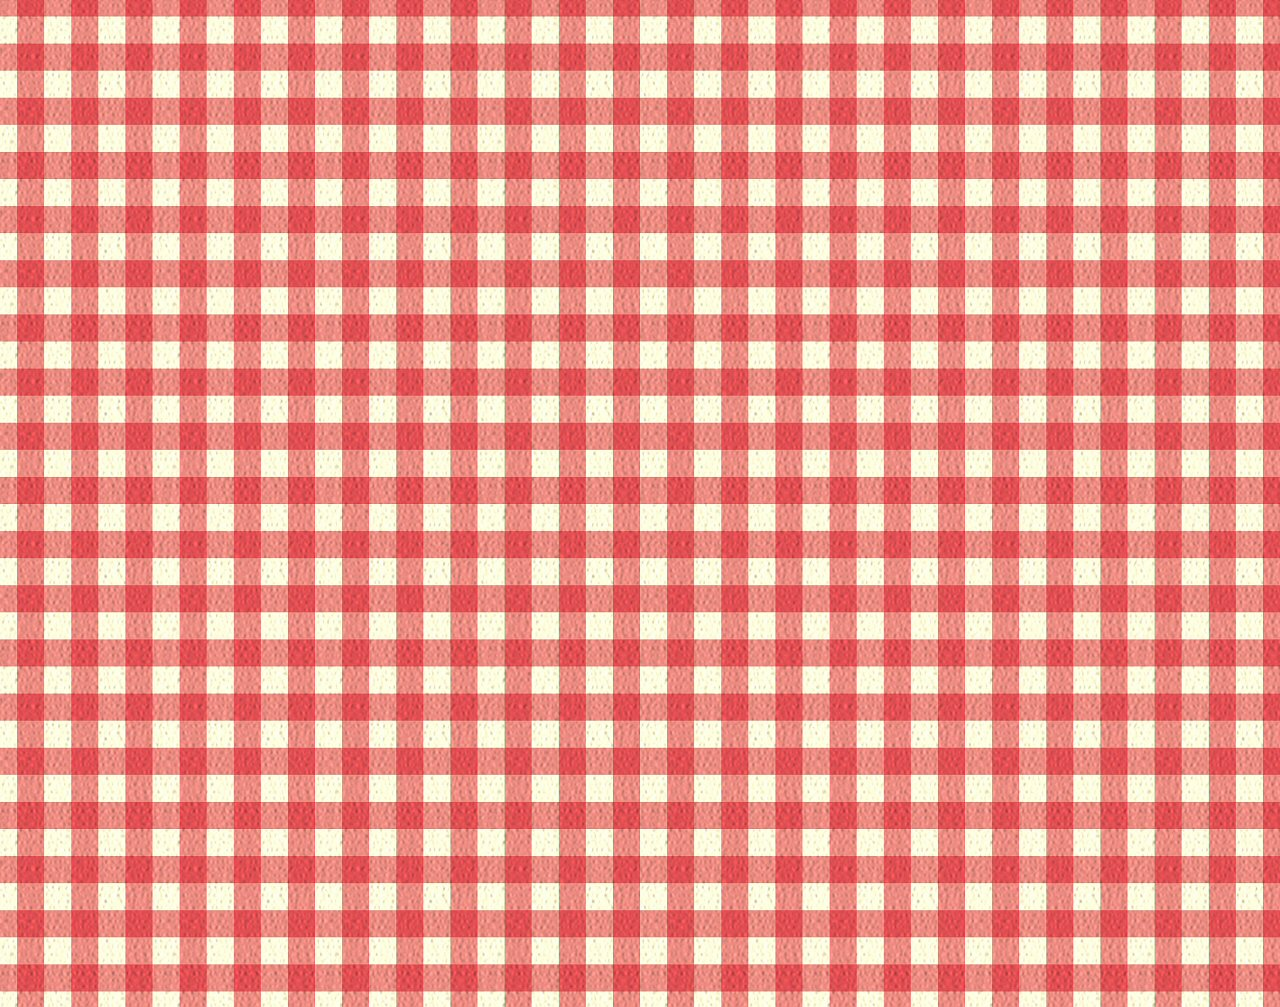 Wonderful Image Gallery: Picnic Tablecloth